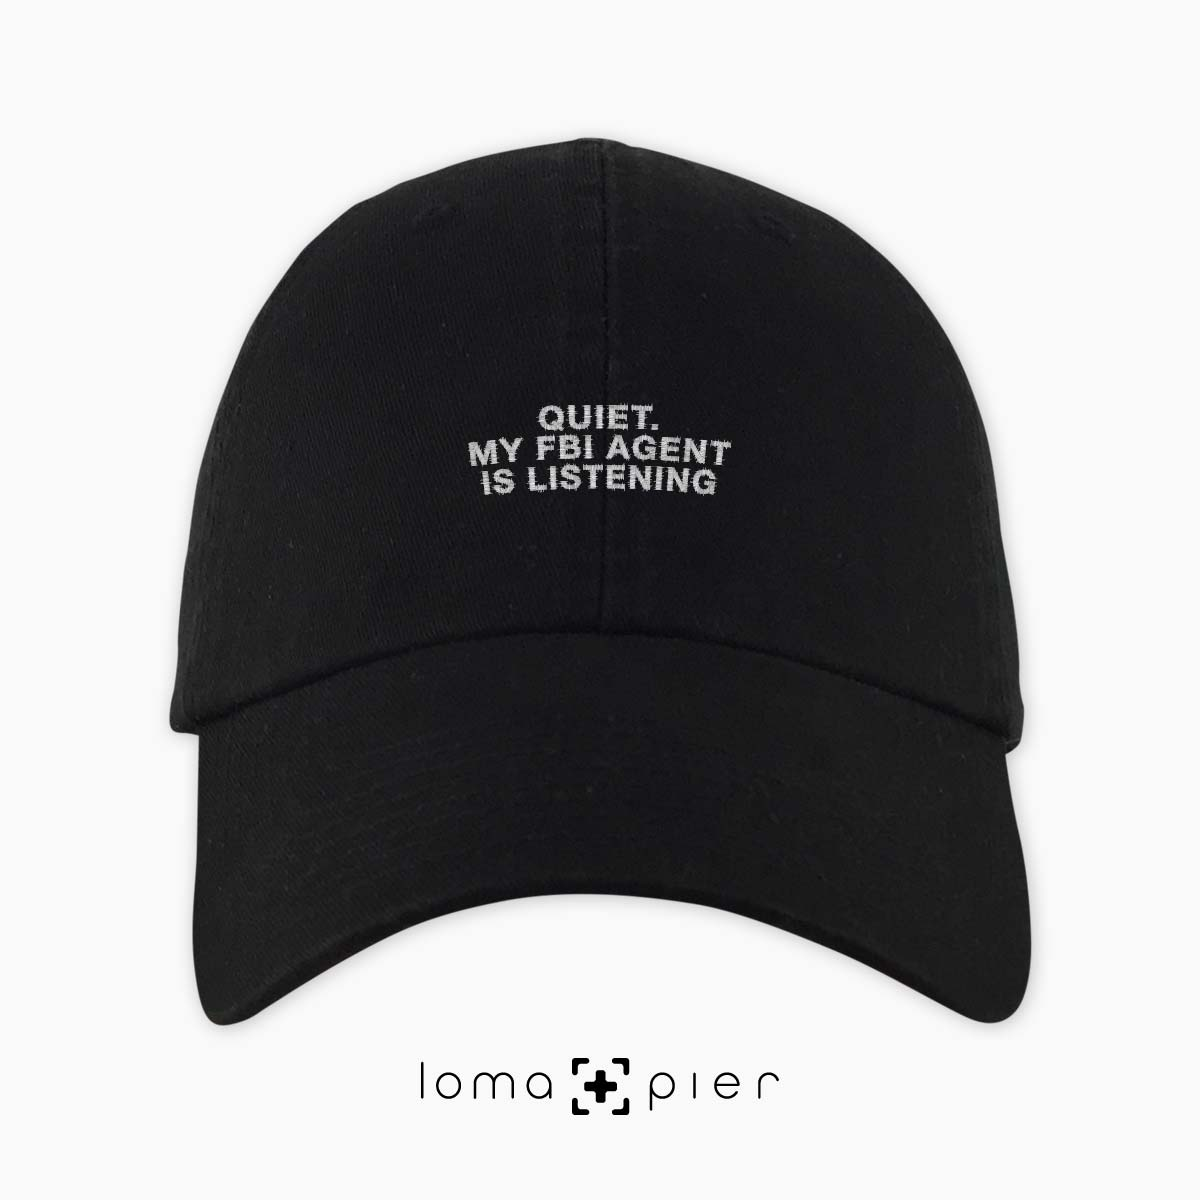 QUIET MY FBI AGENT IS LISTENING dad hat in black by loma+pier hat store